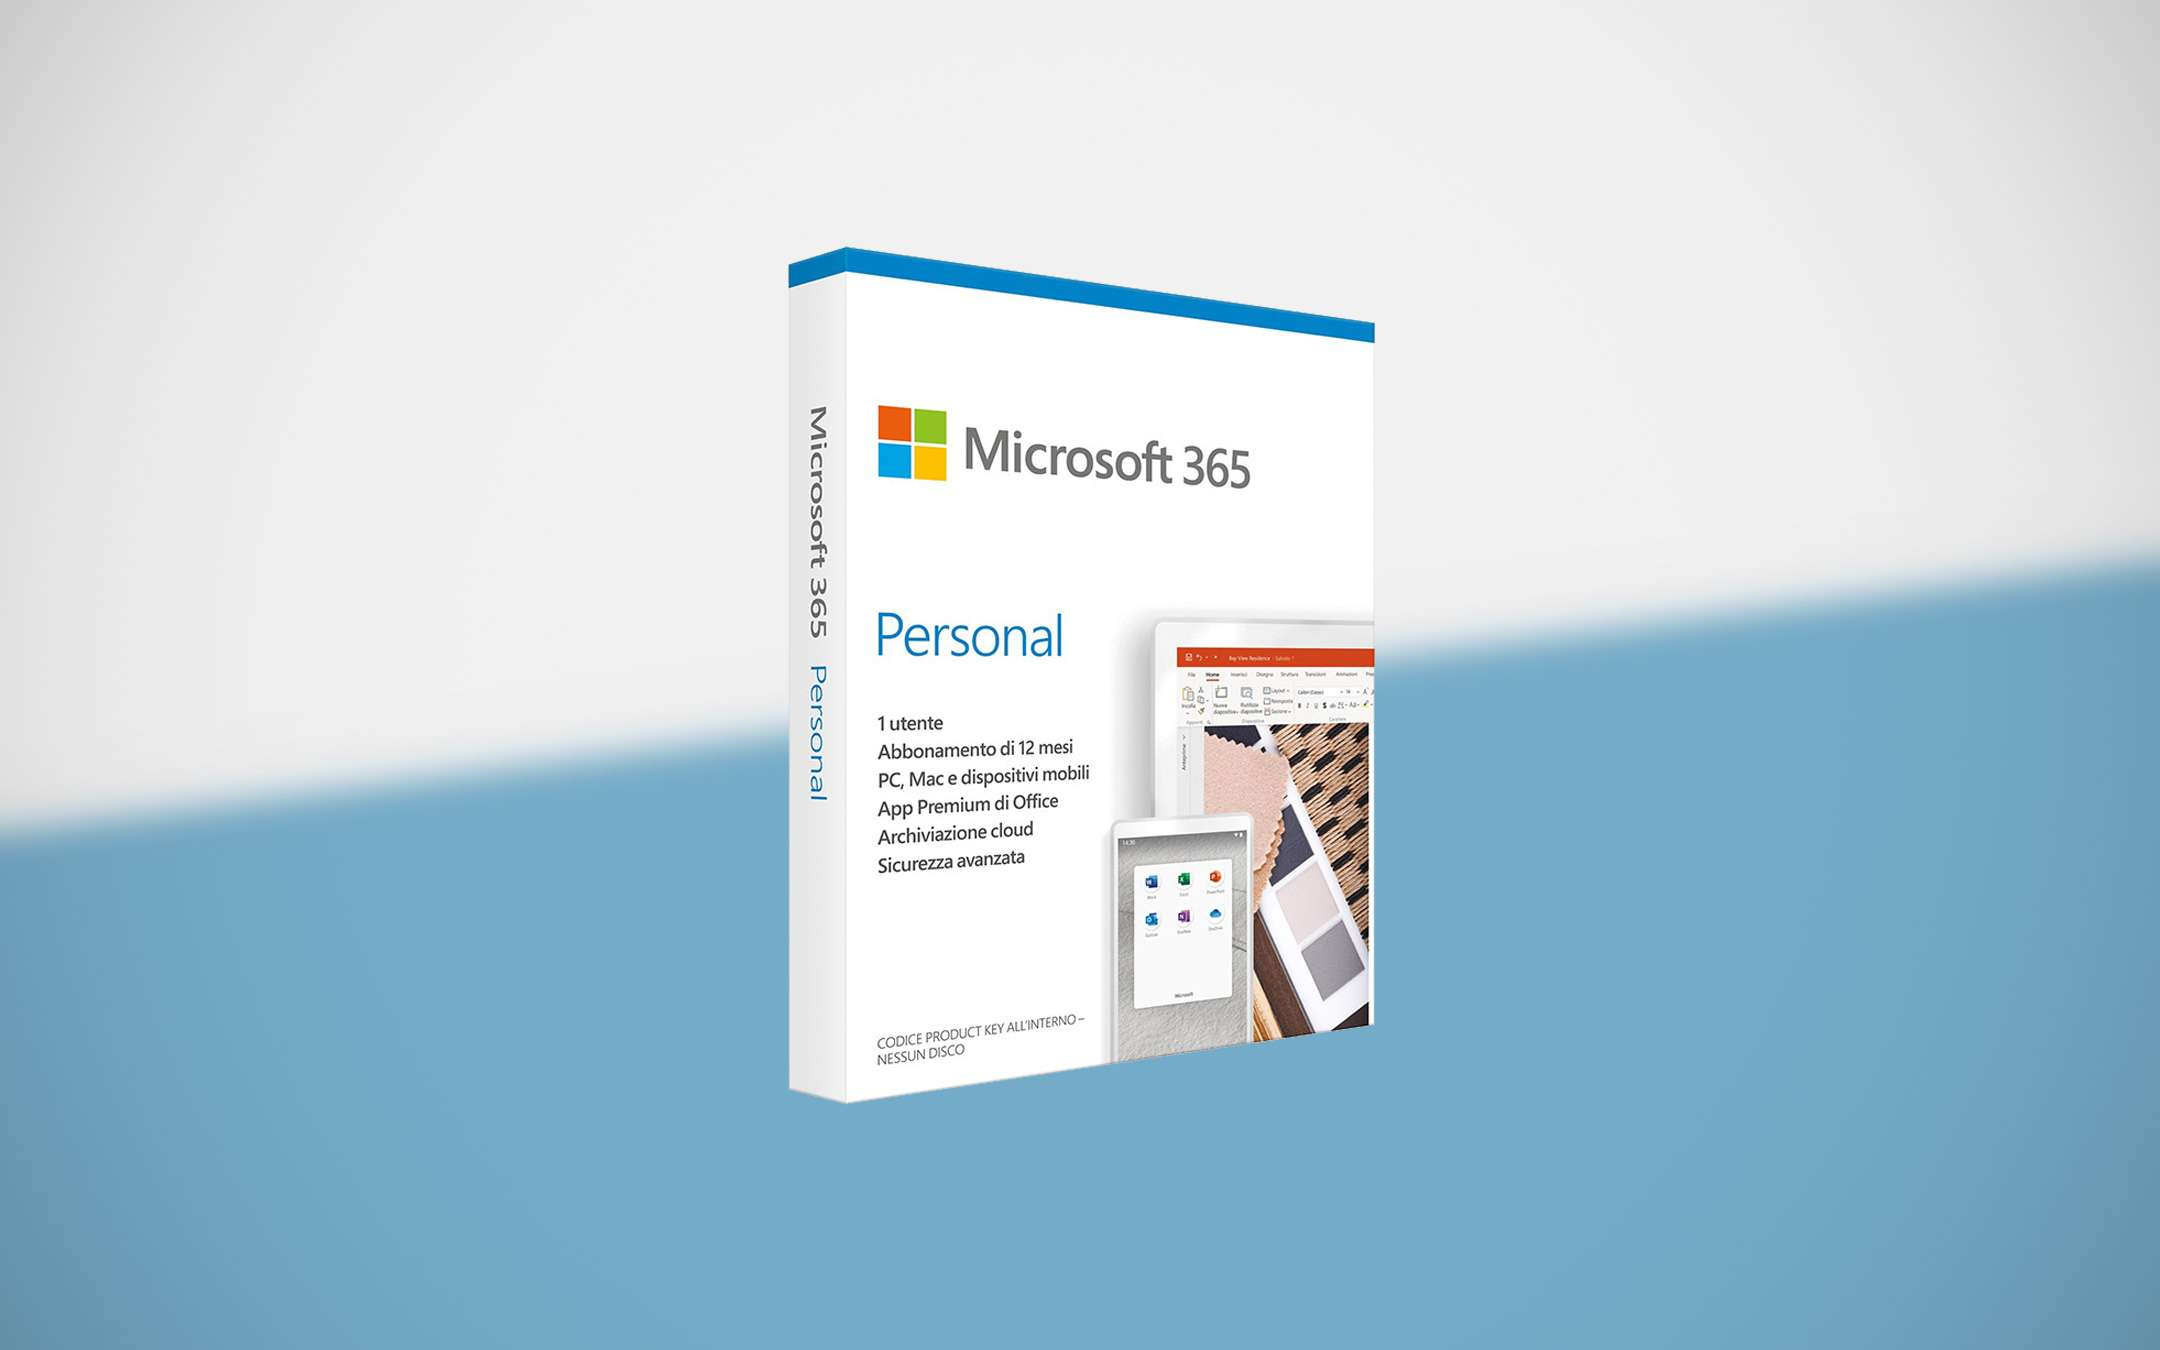 Microsoft 365 Personal on offer at 49.99 euros